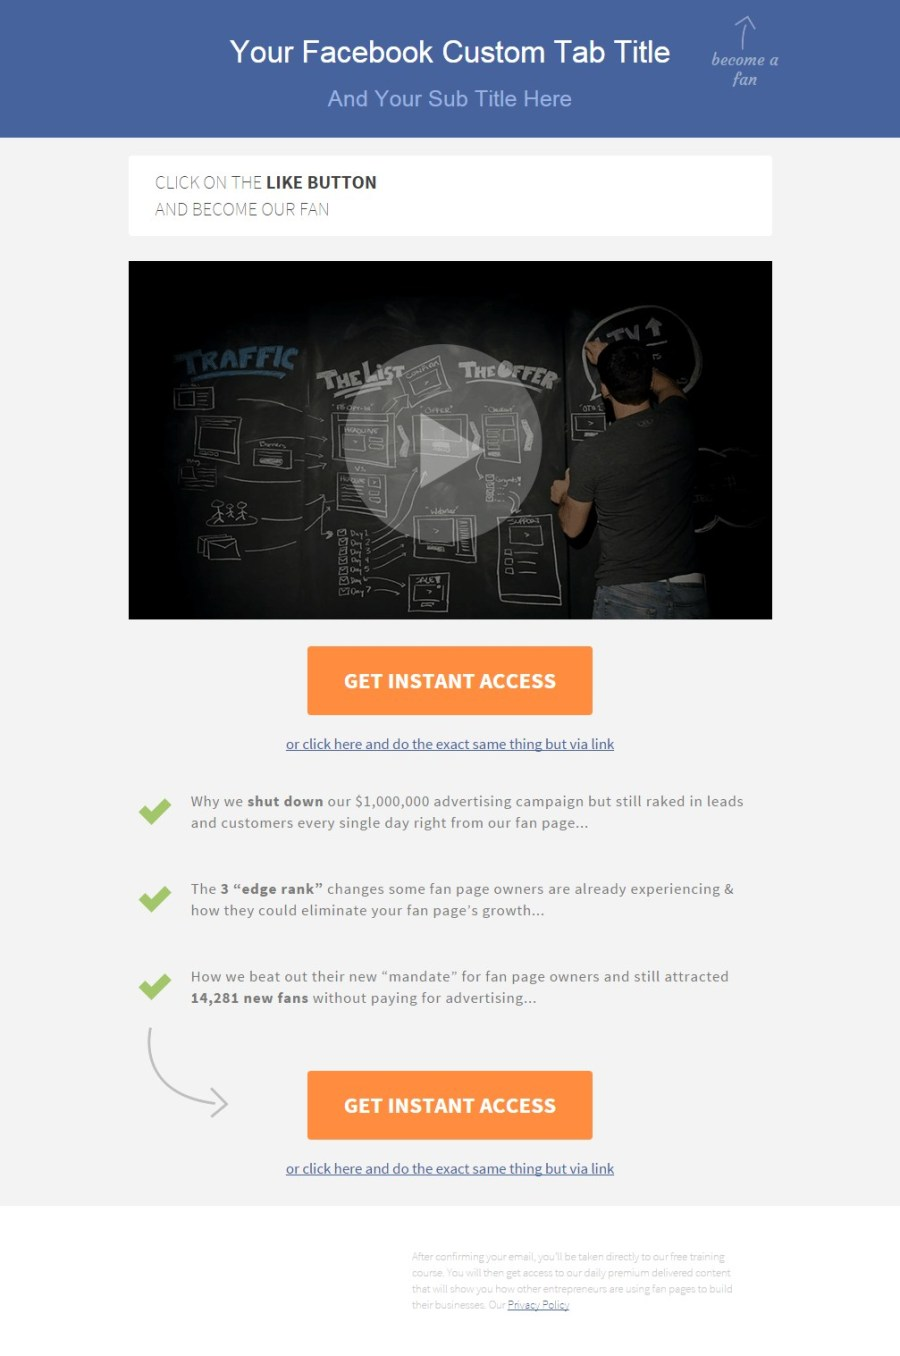 Brian Facebook Landing Page - Video landing page templates